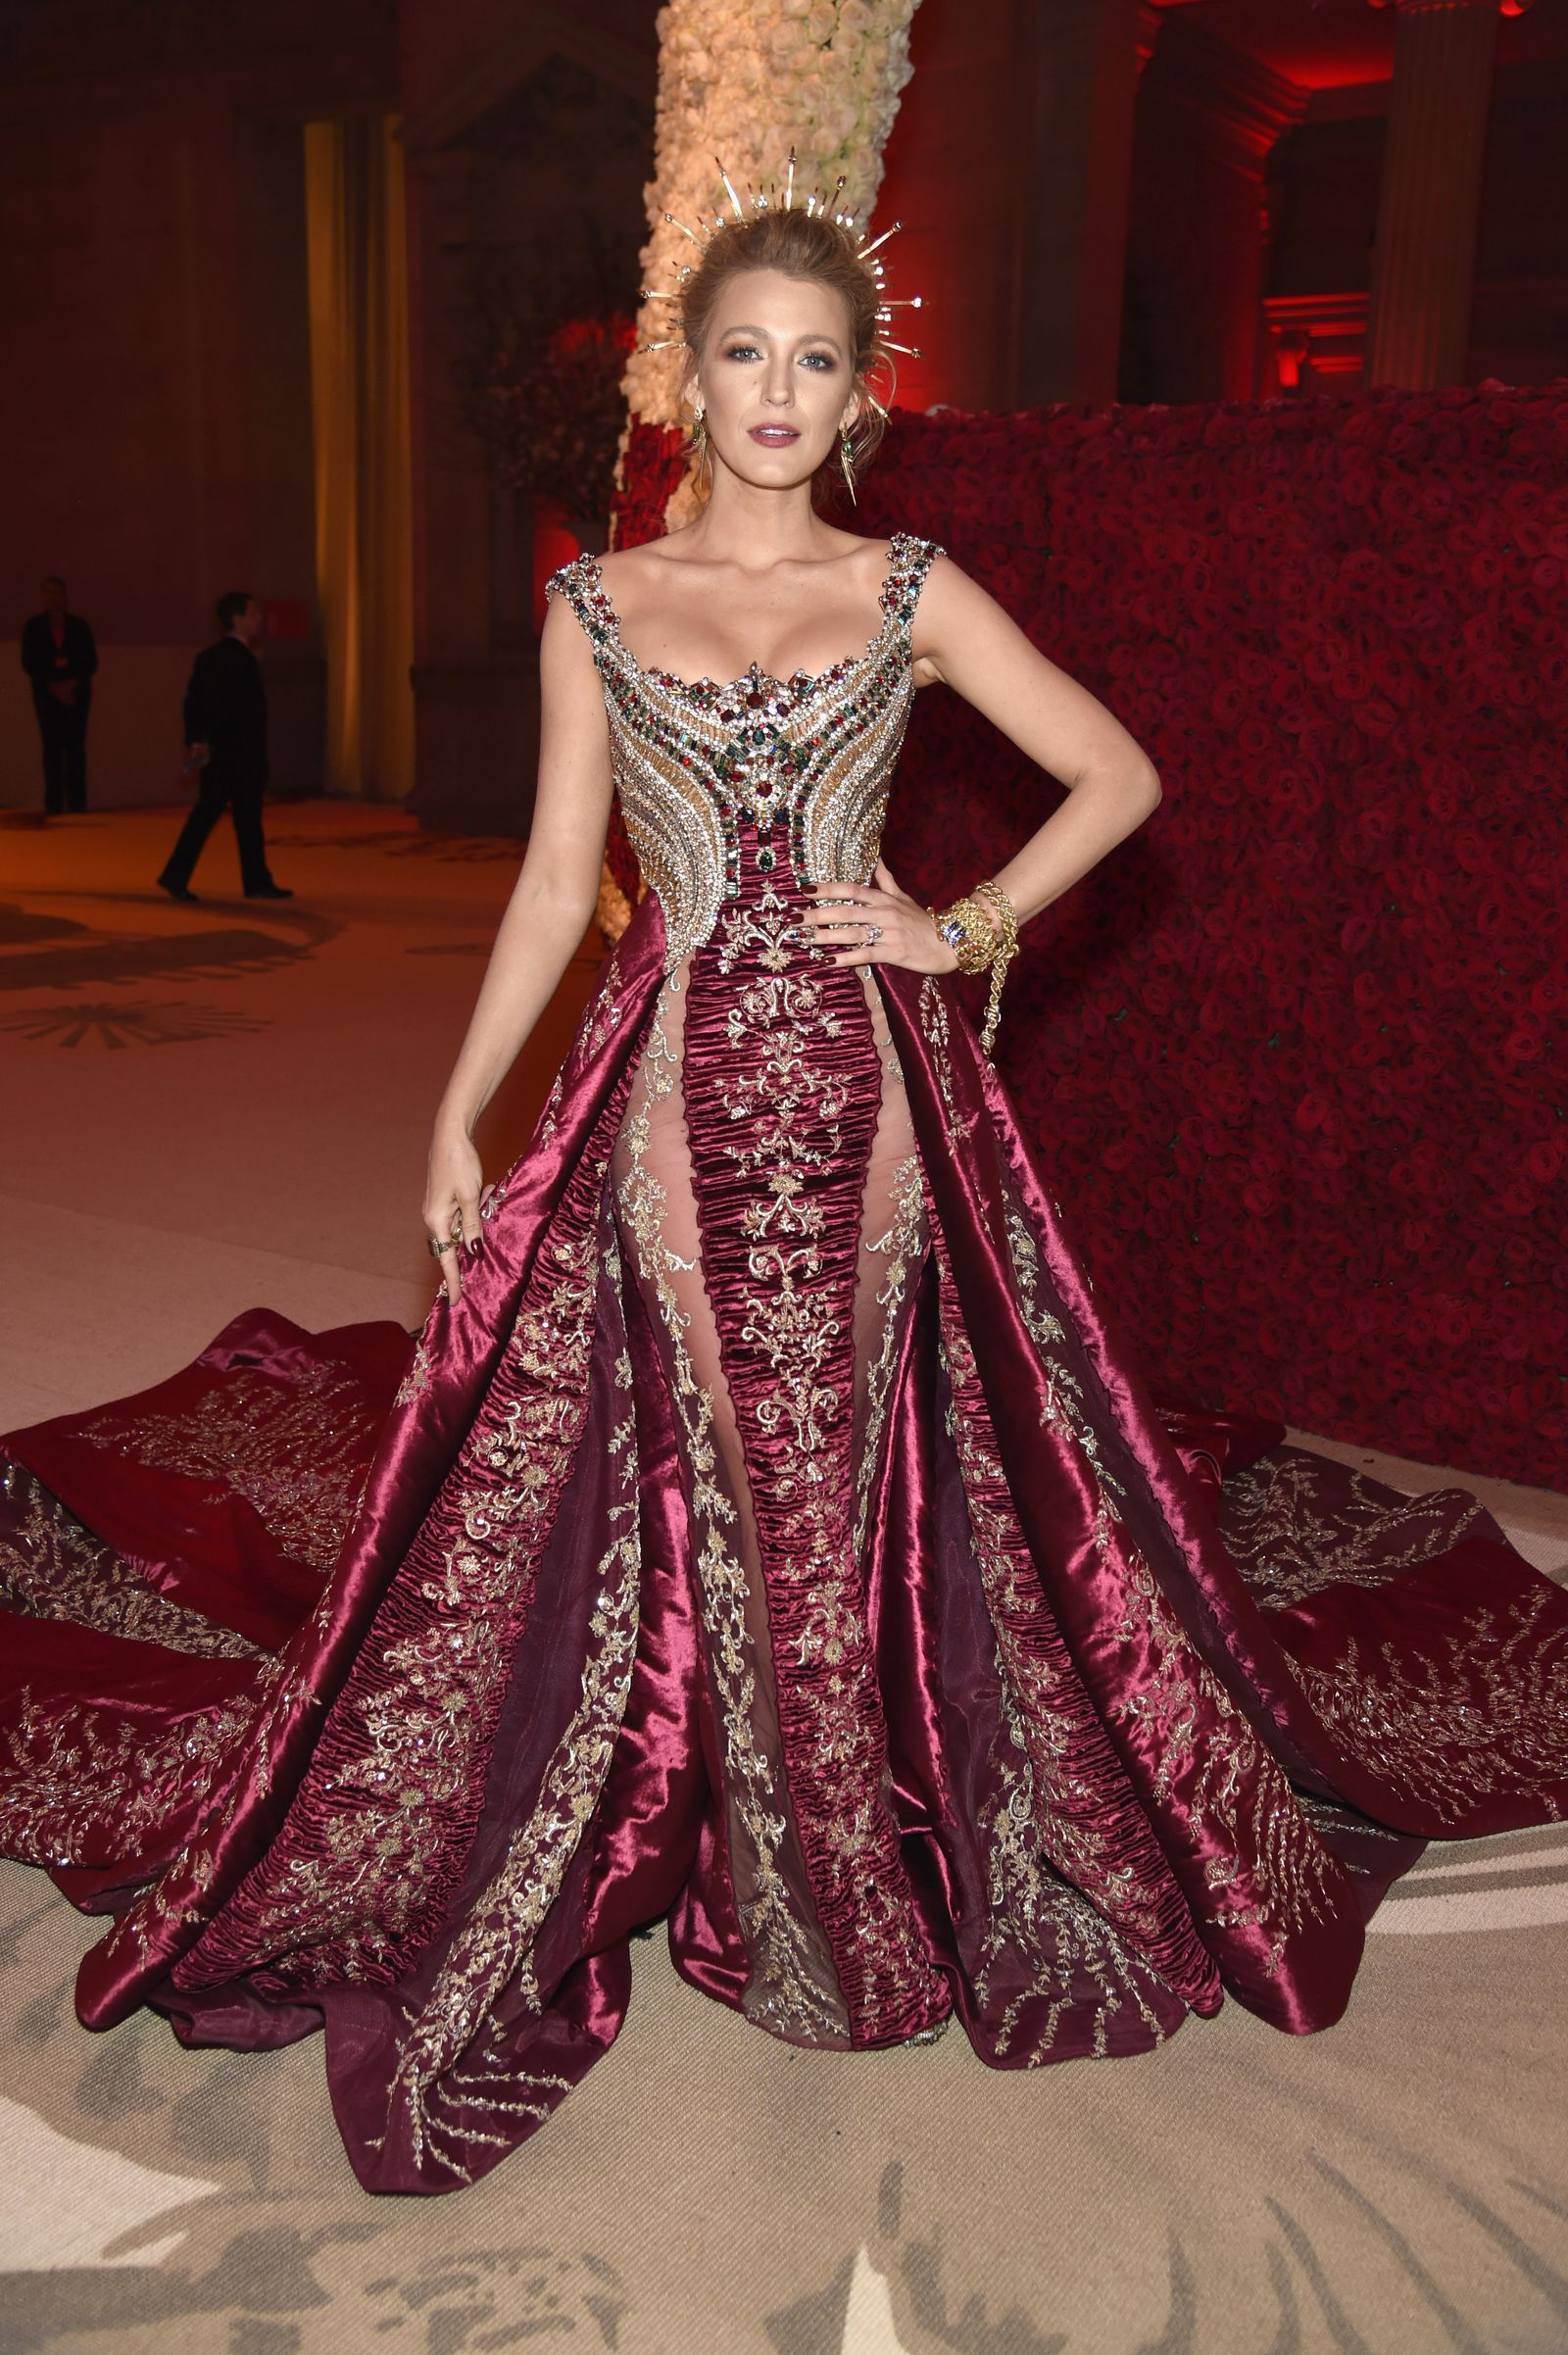 Blake Lively's Met Gala transformation from 2008 to 2018